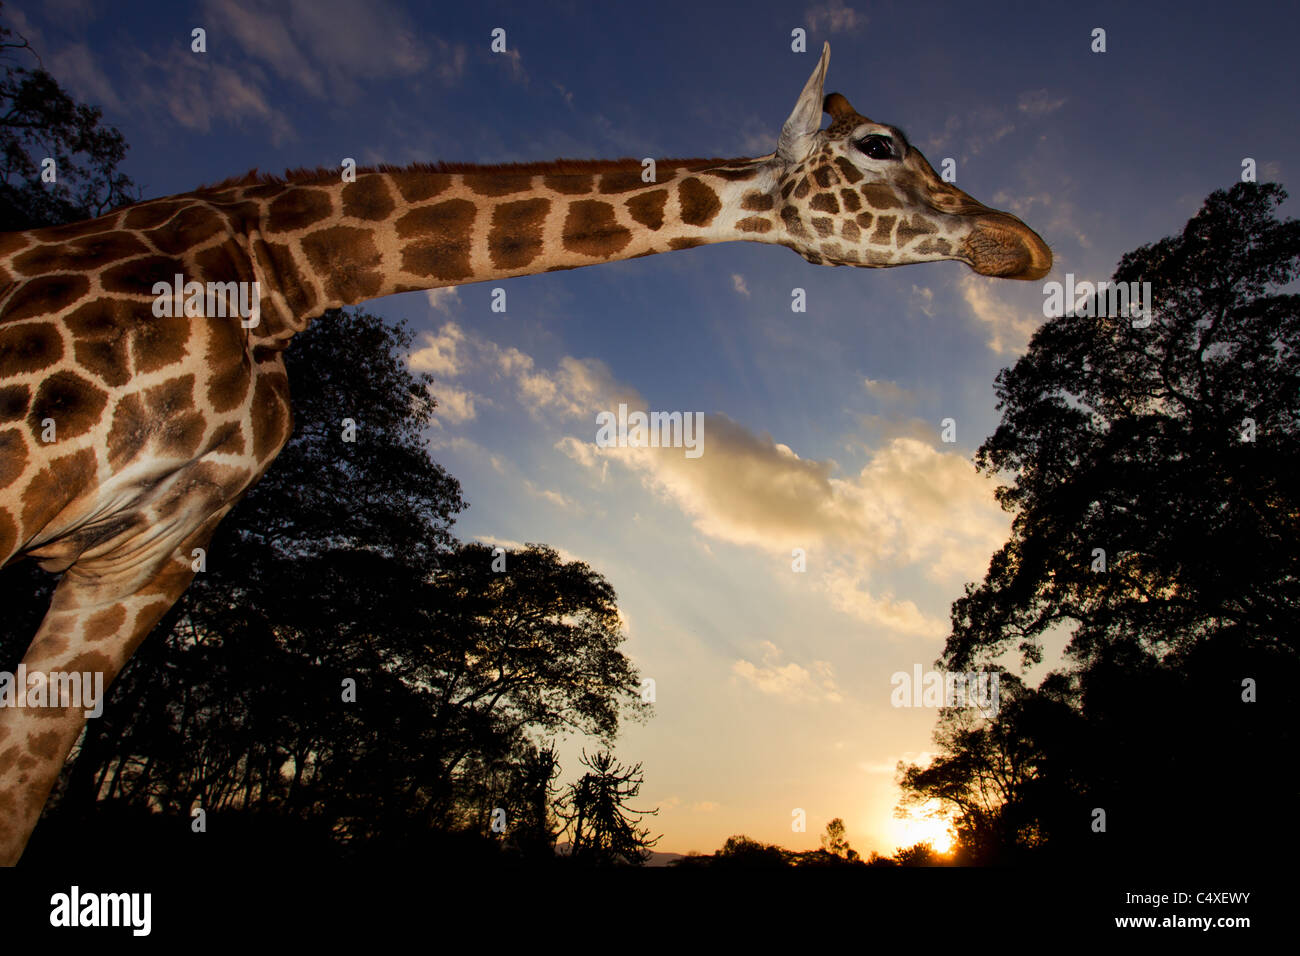 Rothschild Giraffe (Giraffa camelopardalis rothschildi) Is one of 9 subspecies of giraffe.Giraffe Manor Kenya. Dist. - Stock Image